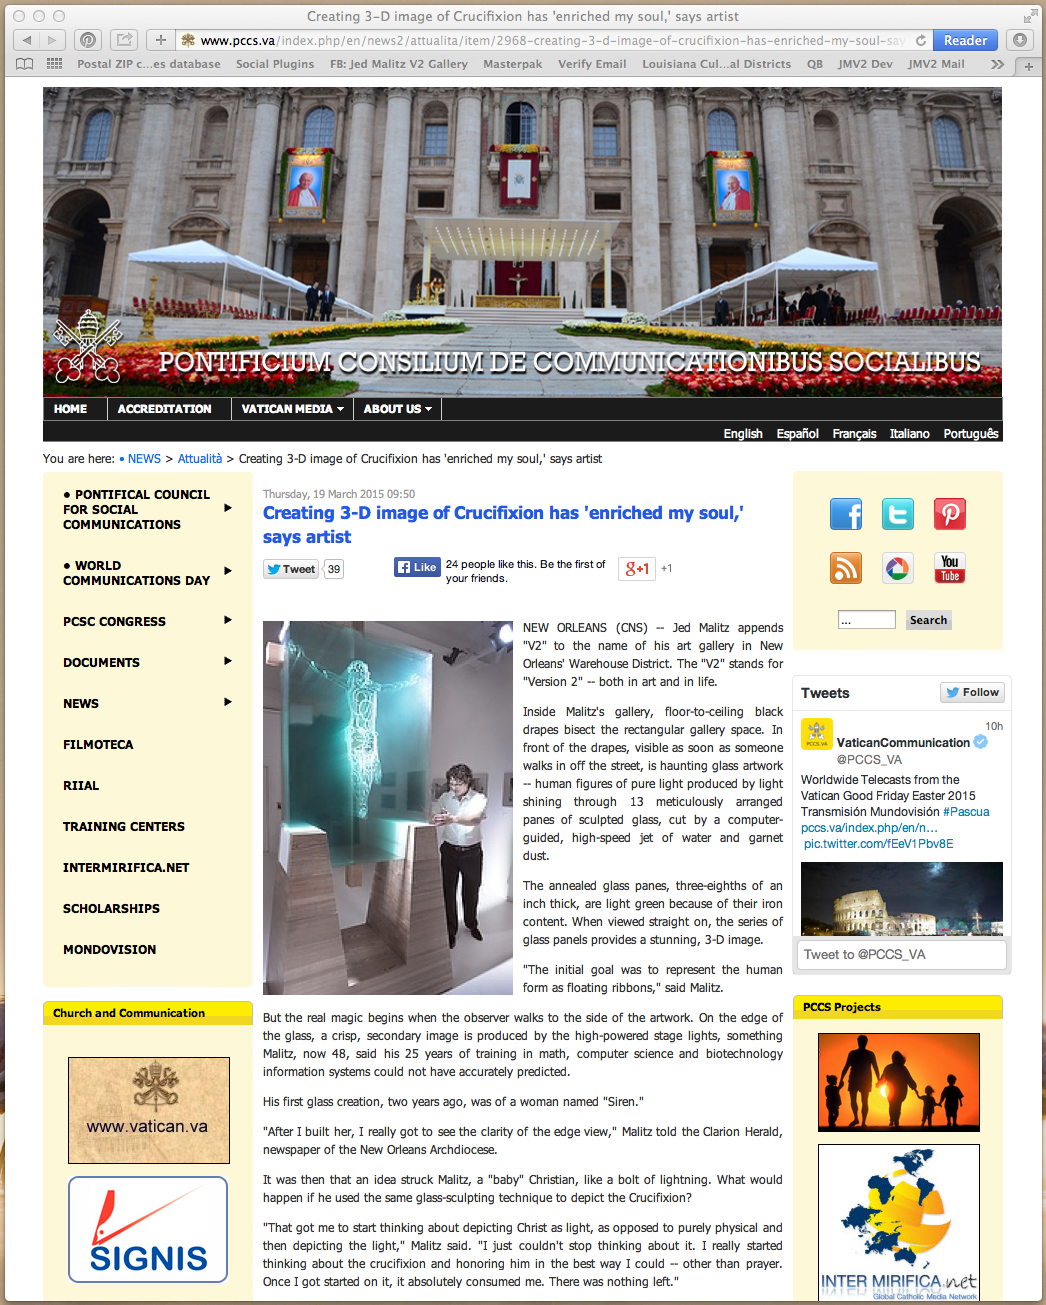 Screen capture of the Vatican Social Media homepage (www.pccs.va) on March 19, 2015.